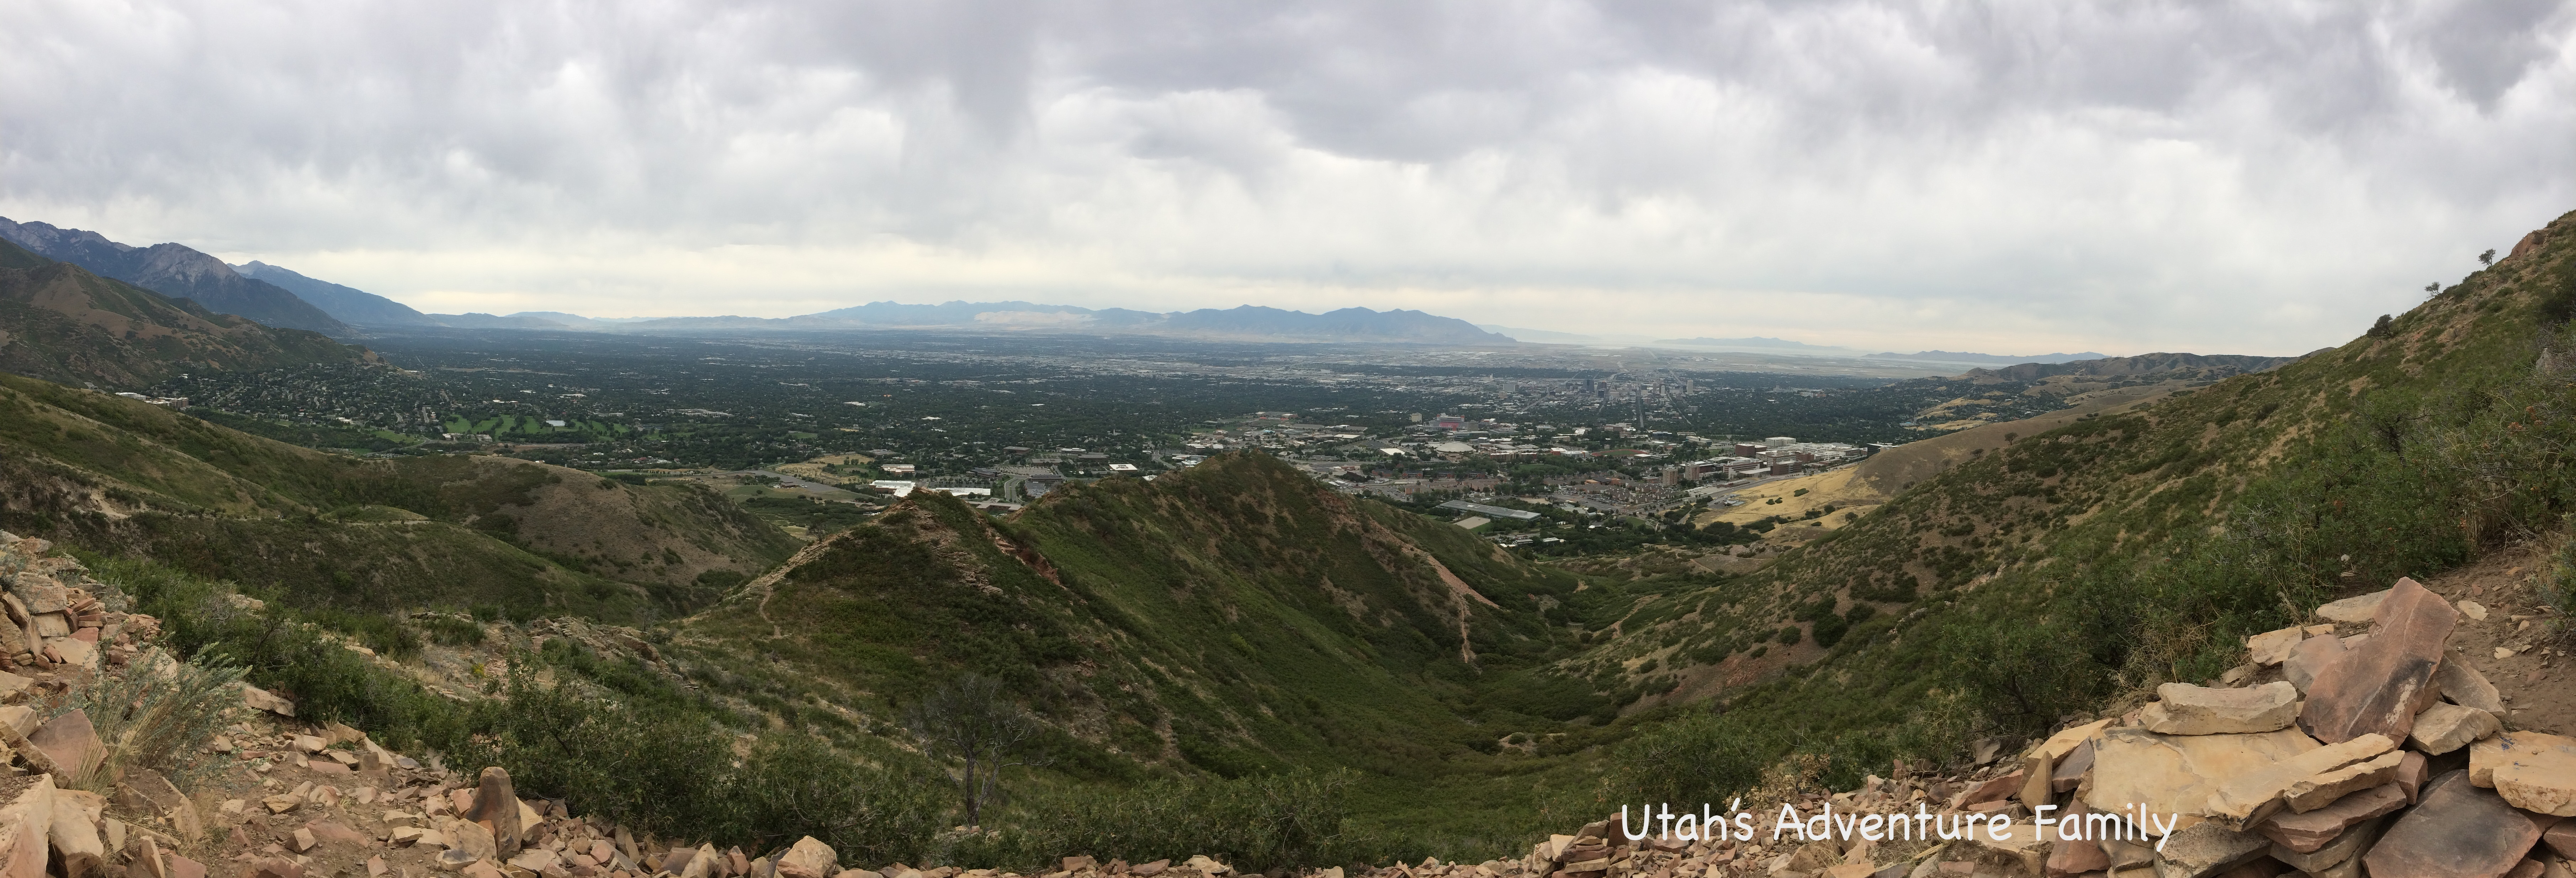 The View Of Salt Lake Valley Is Really Nice